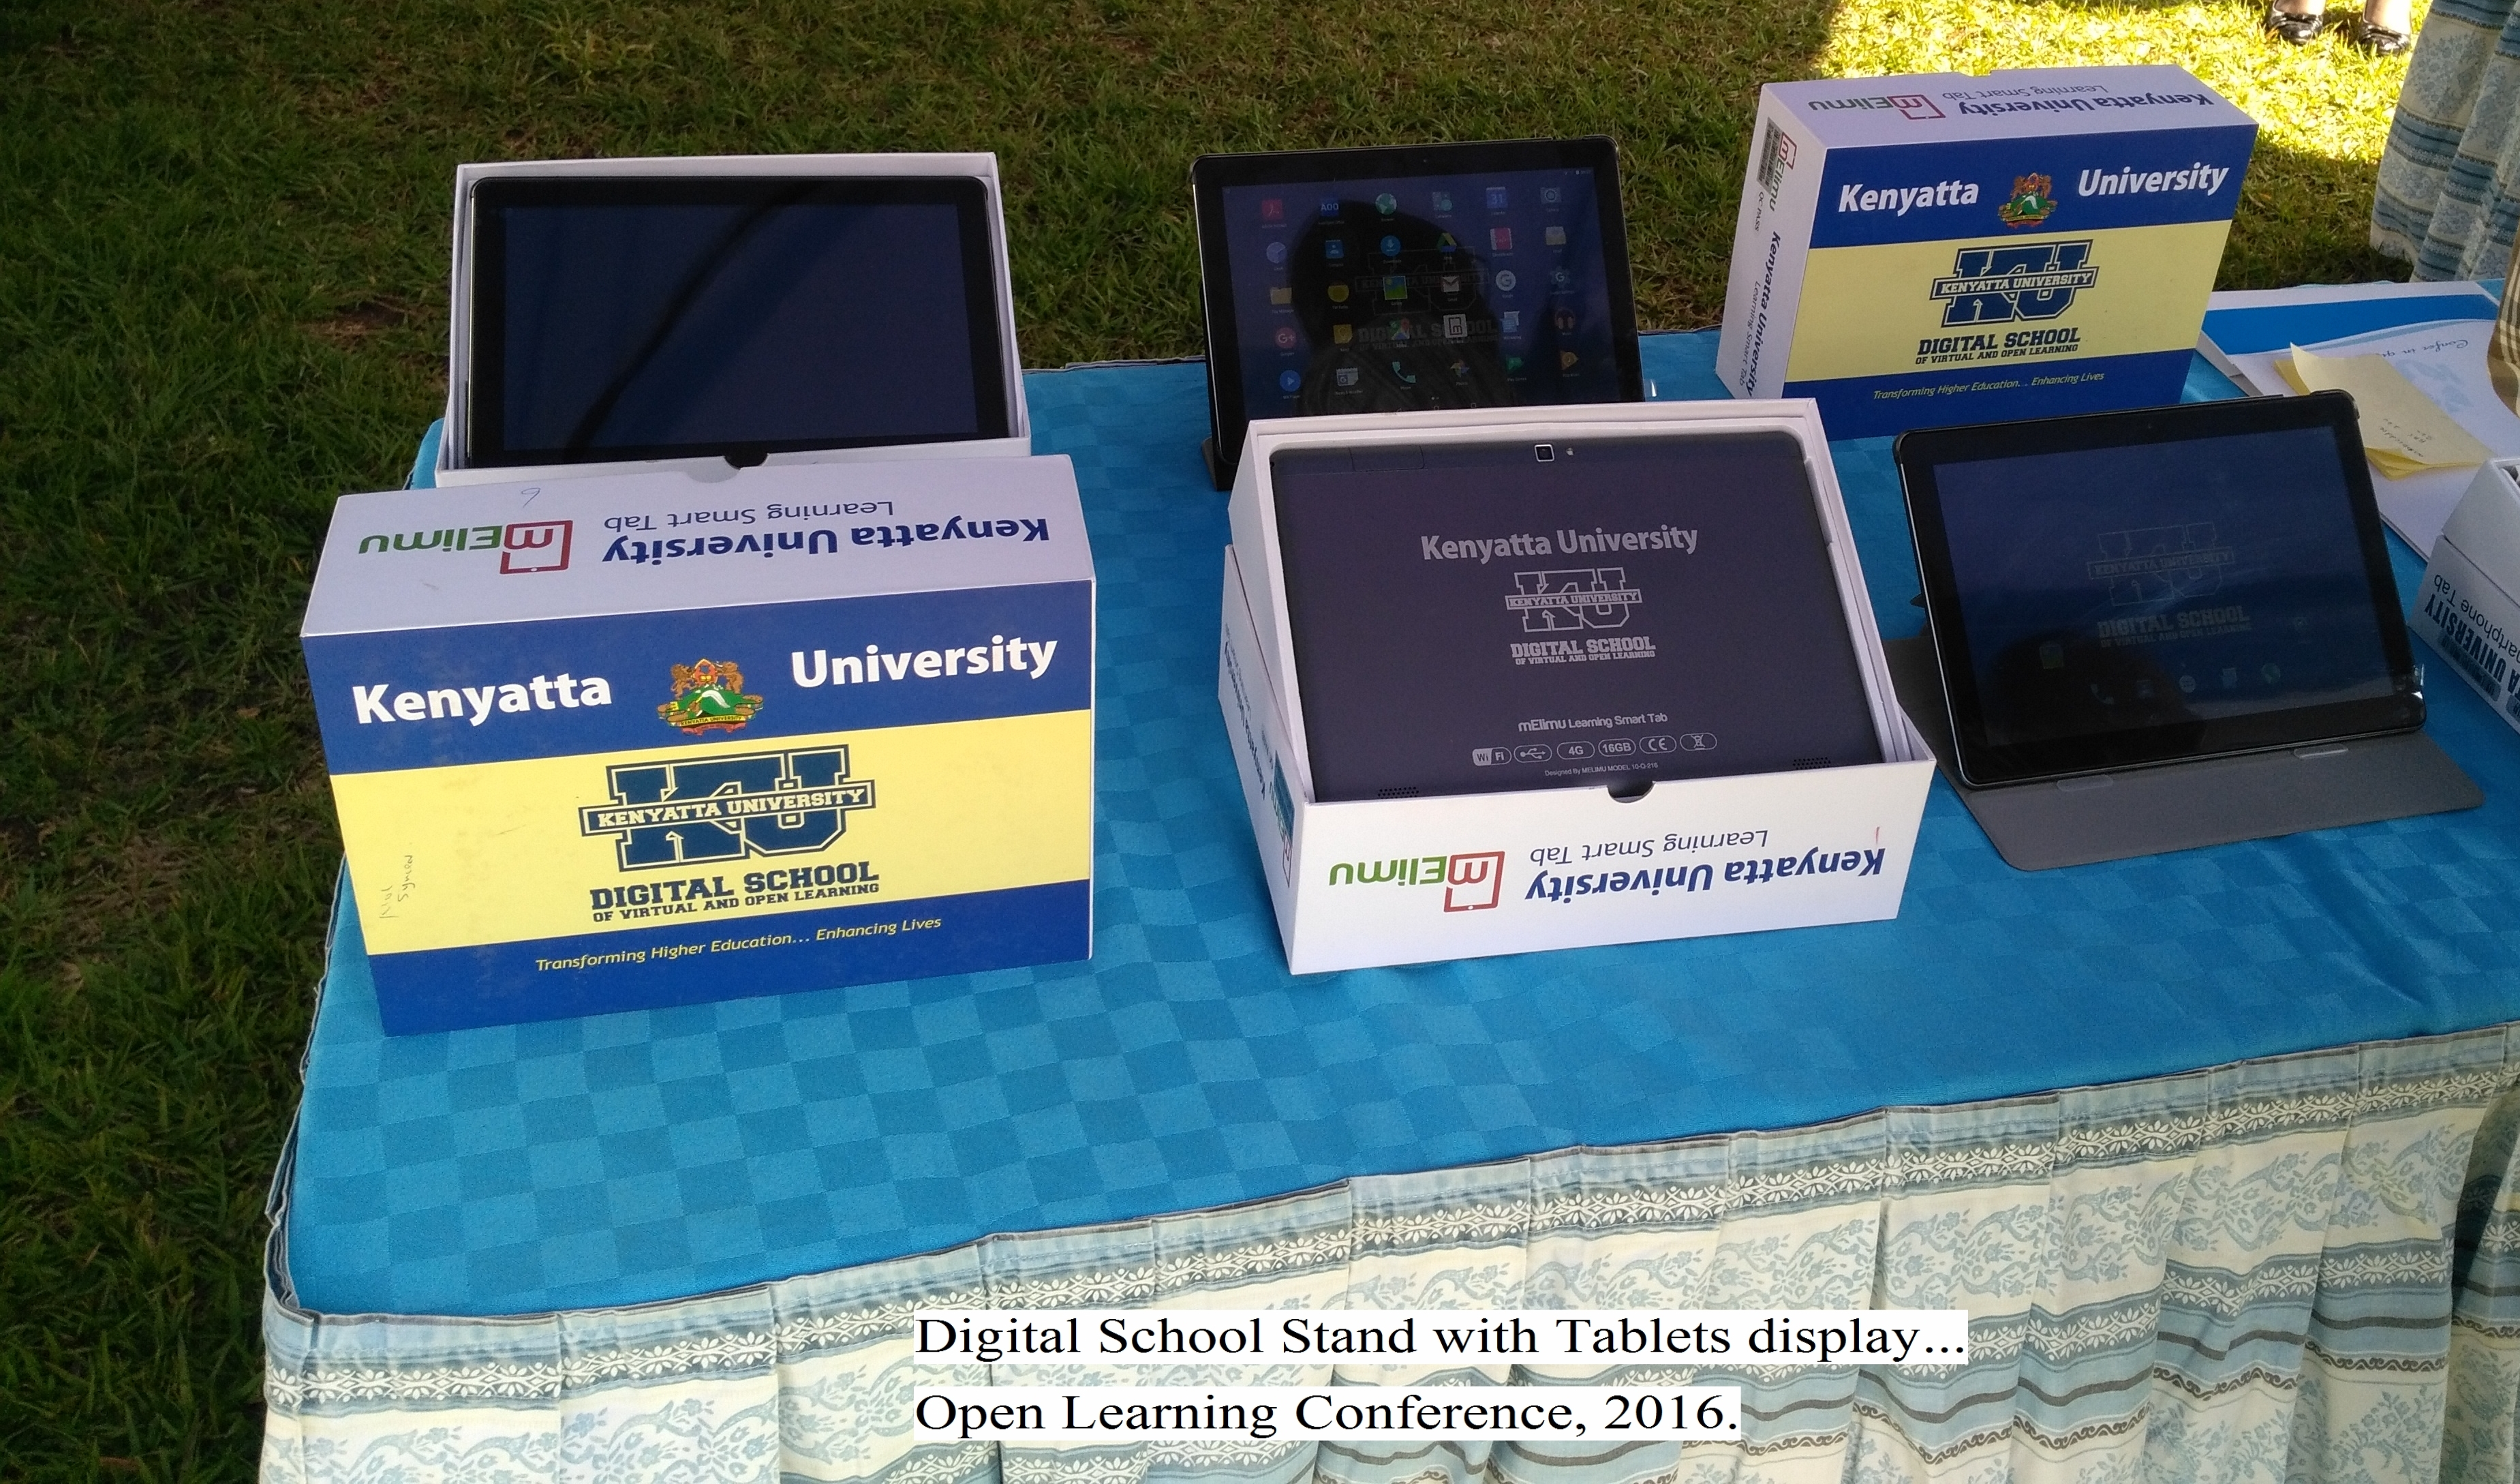 Digital School Stand with Tablets Display